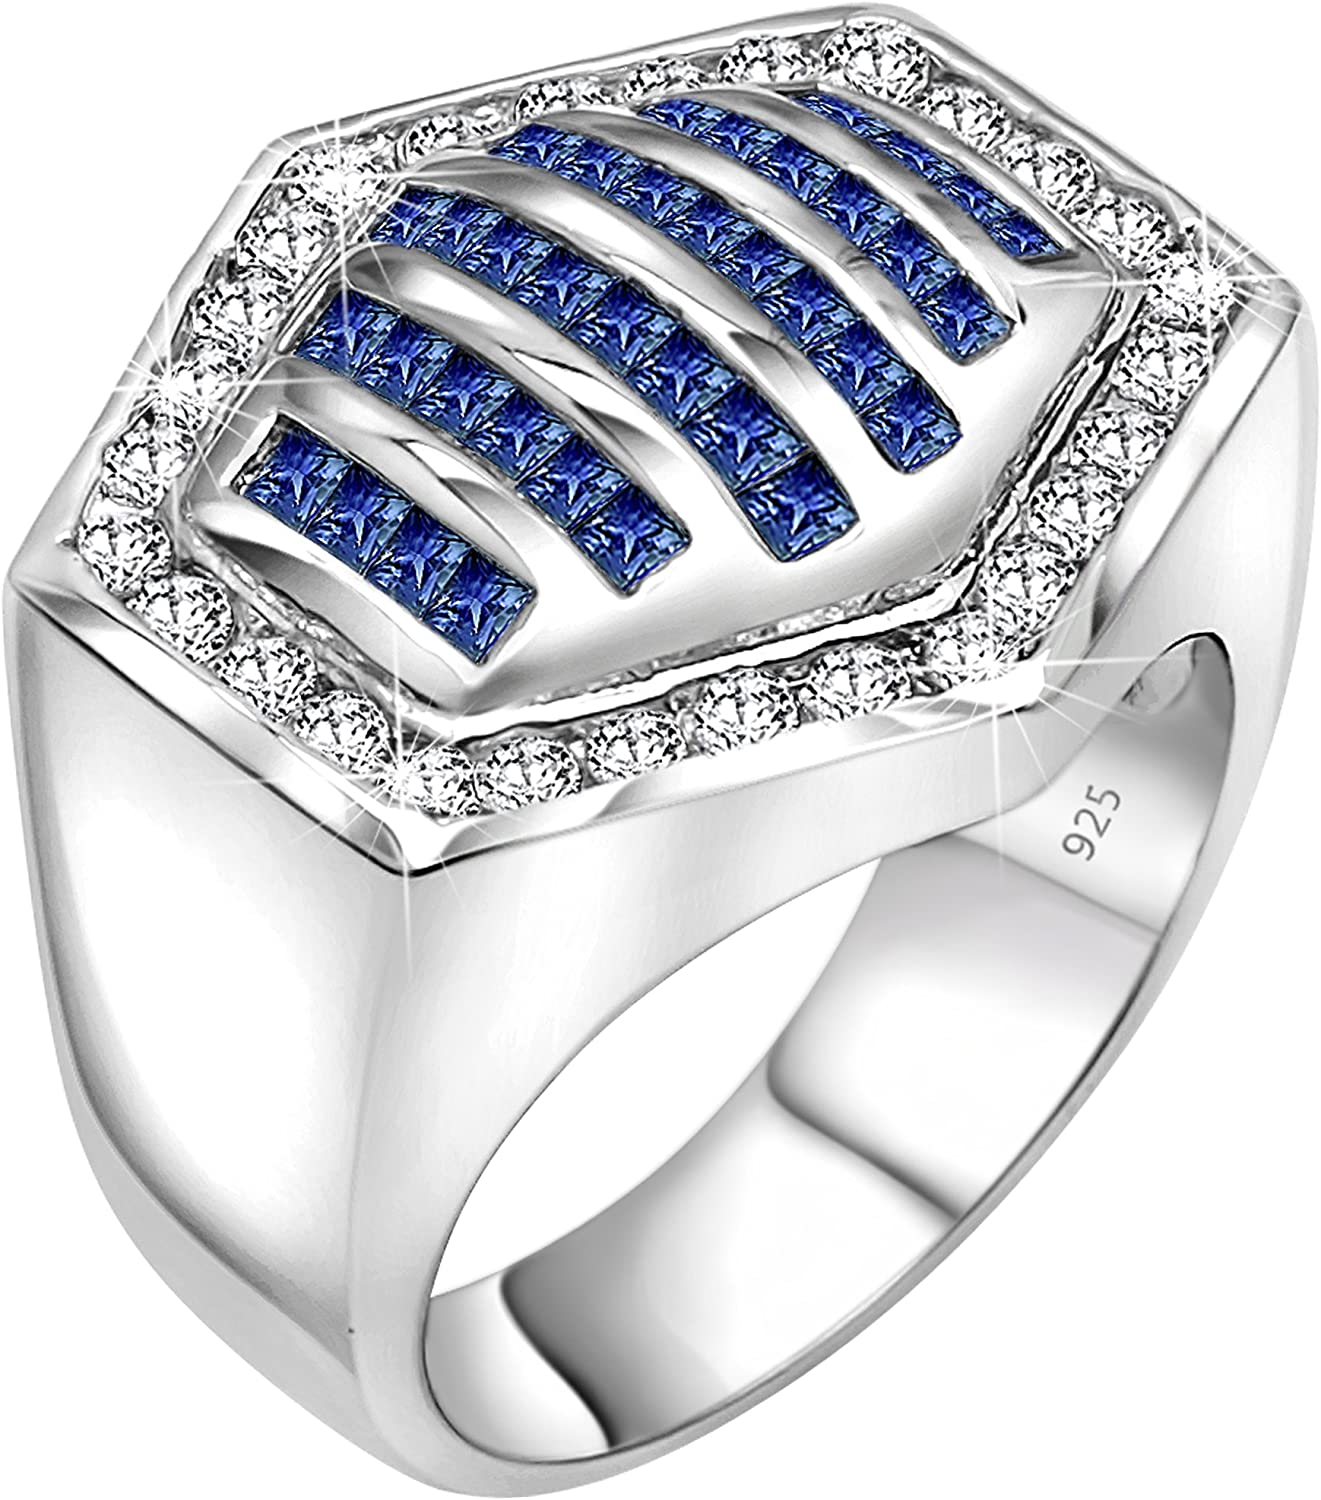 Sterling Manufacturers [2-5 Days Delivery] Men's Sterling Silver .925 Hexagonal Ring Featuring 64 White and Azure Blue Round and Baguette Cubic Zirconia (CZ) Stones, Platinum Plated Iced Flashy